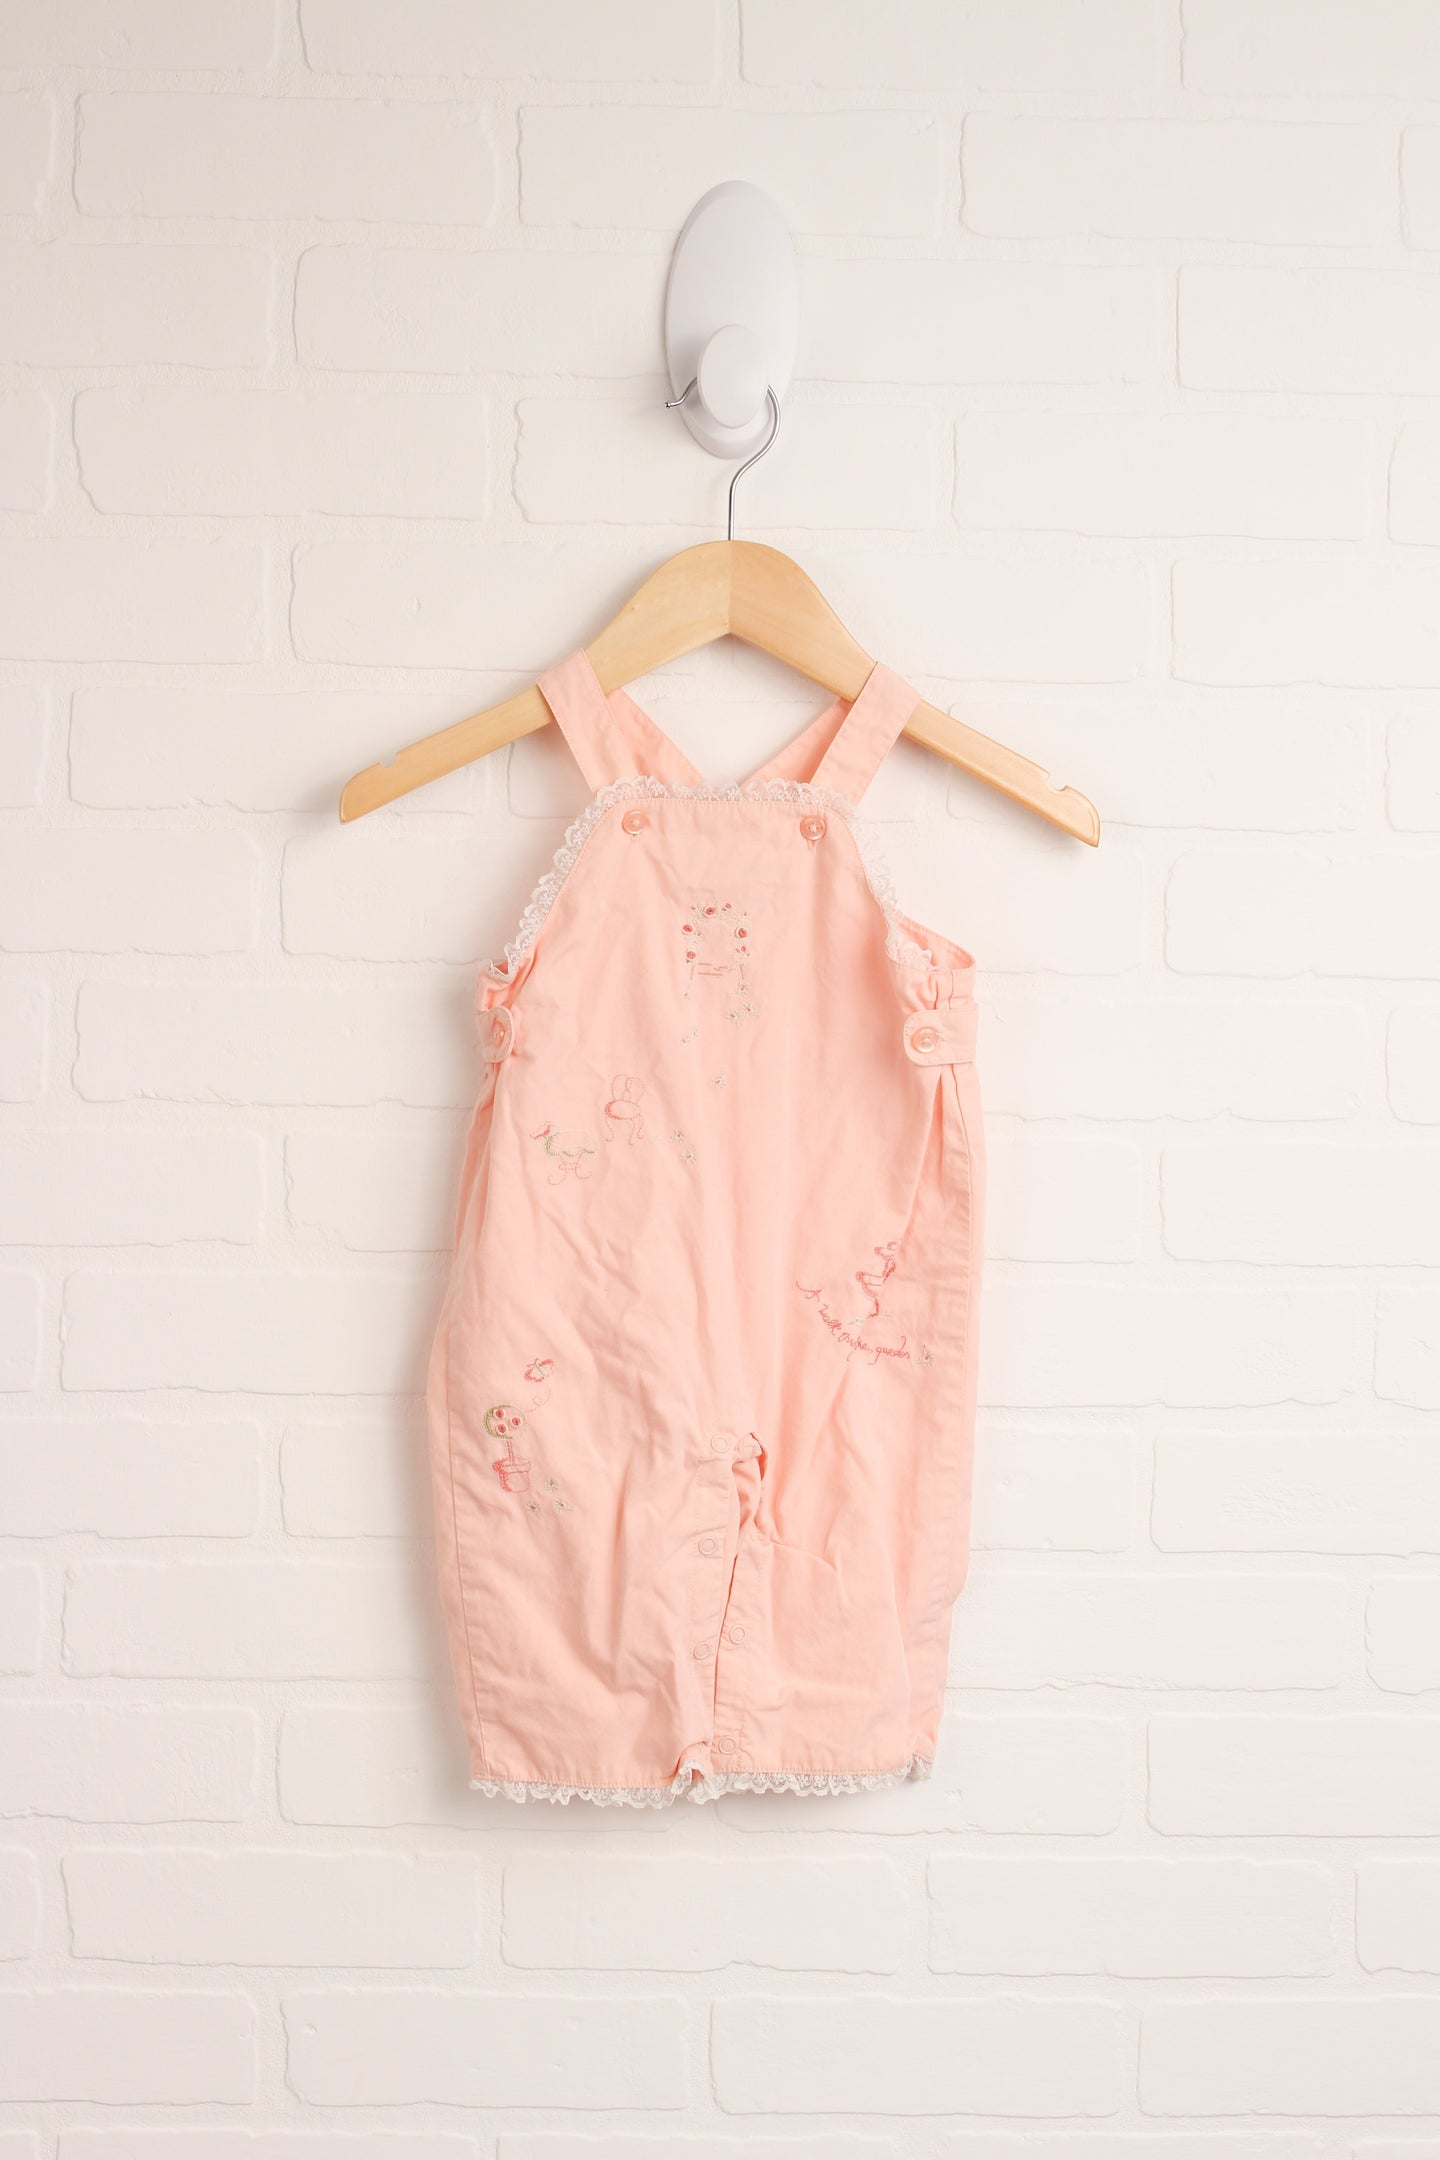 Vintage Overalls (Size 3-6M)